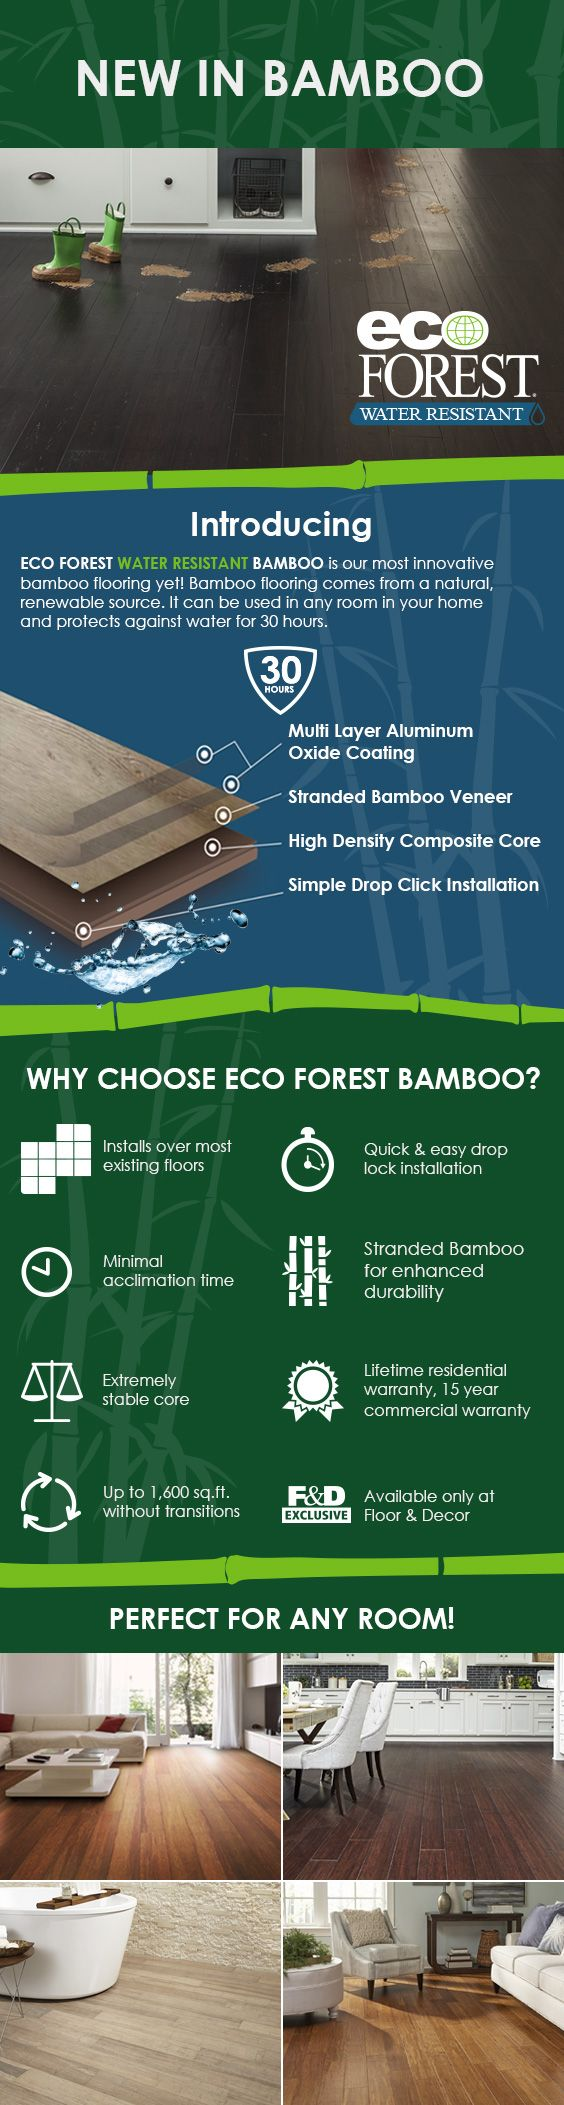 Kid-friendly, pet-friendly, and eco-friendly, EcoForest Water Resistant can be used in any room in your home.